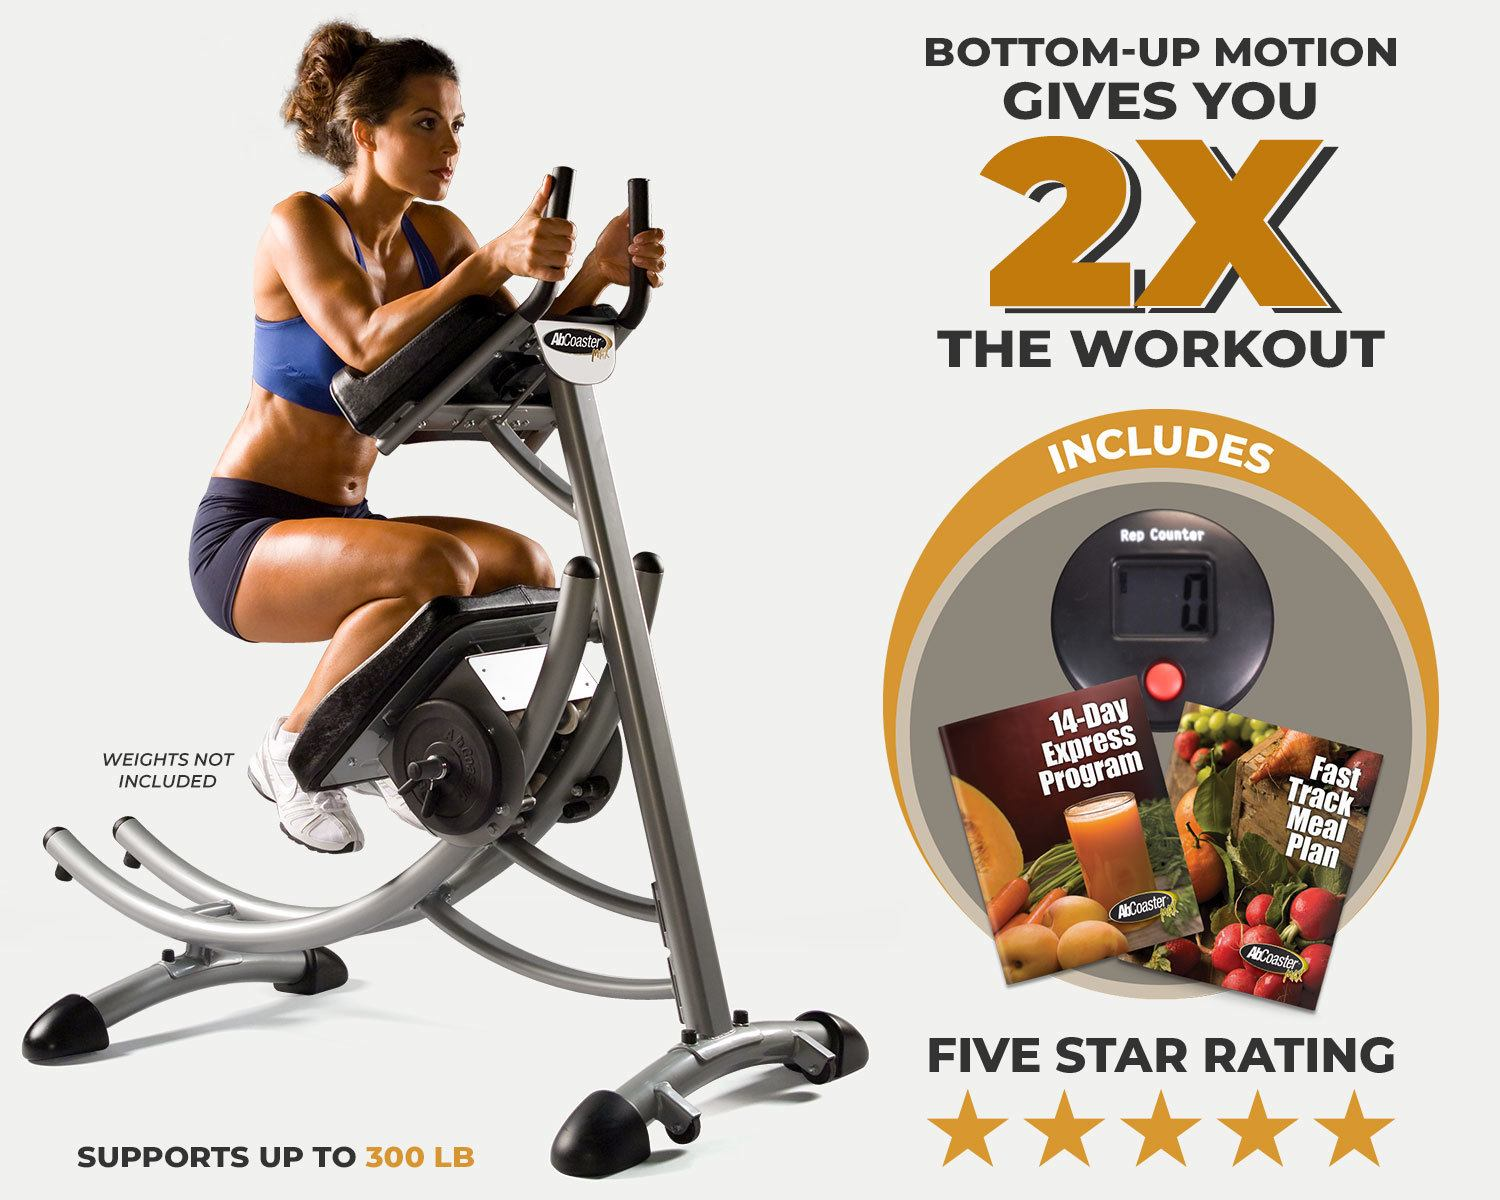 offer includes rep counter, 14 day express program, fast track meal plan